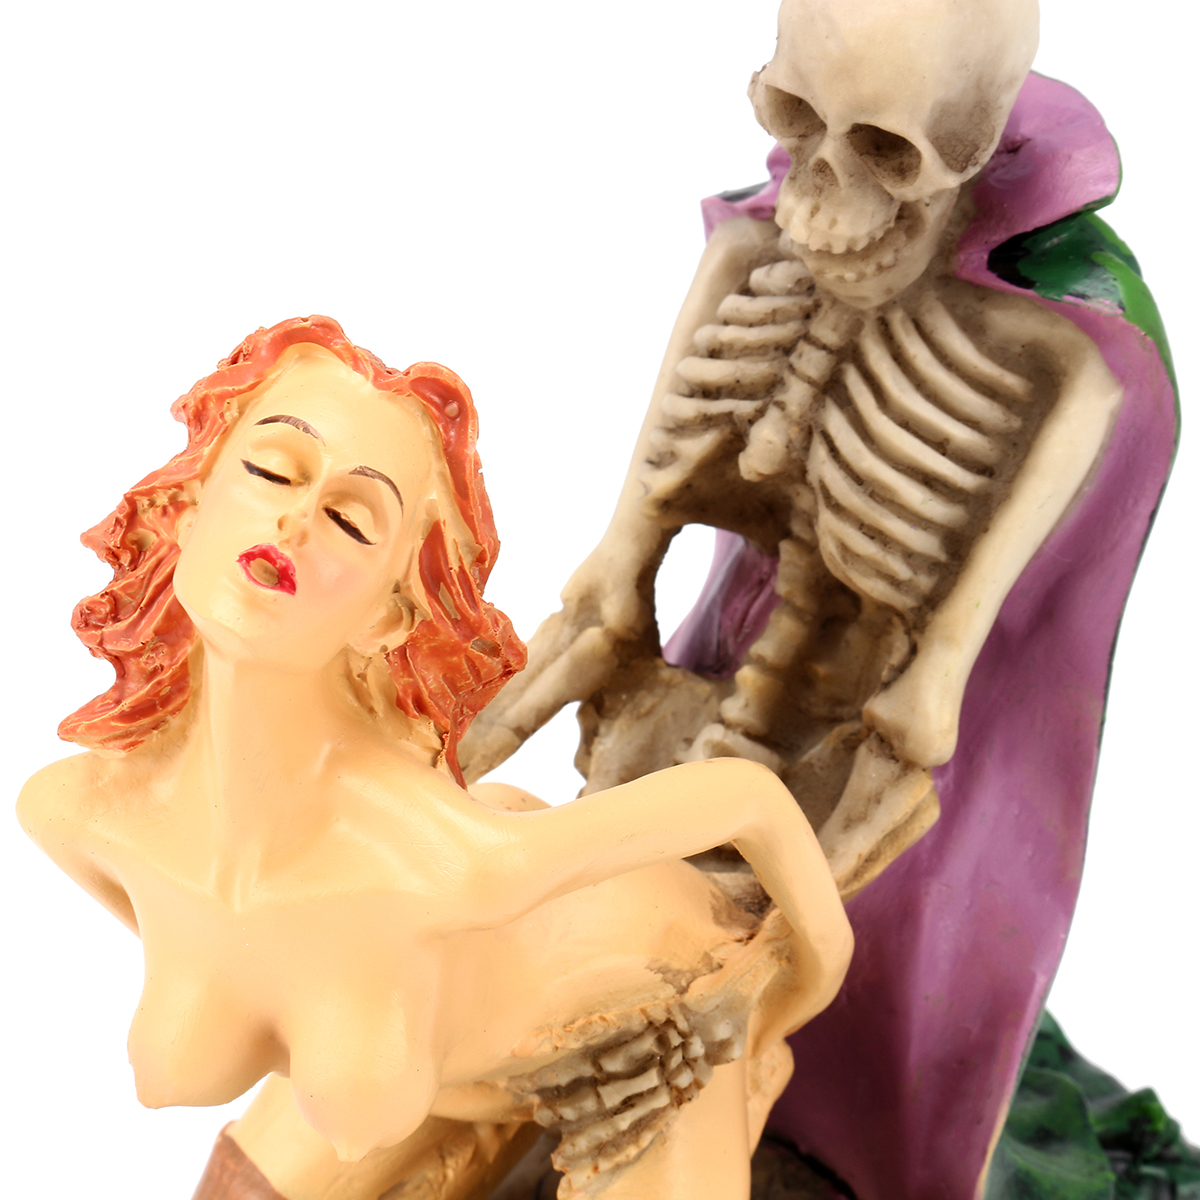 Nude Funny Dracula Lover Skulls Sexy Statues Adult Ceremony Polyresin Action Figure